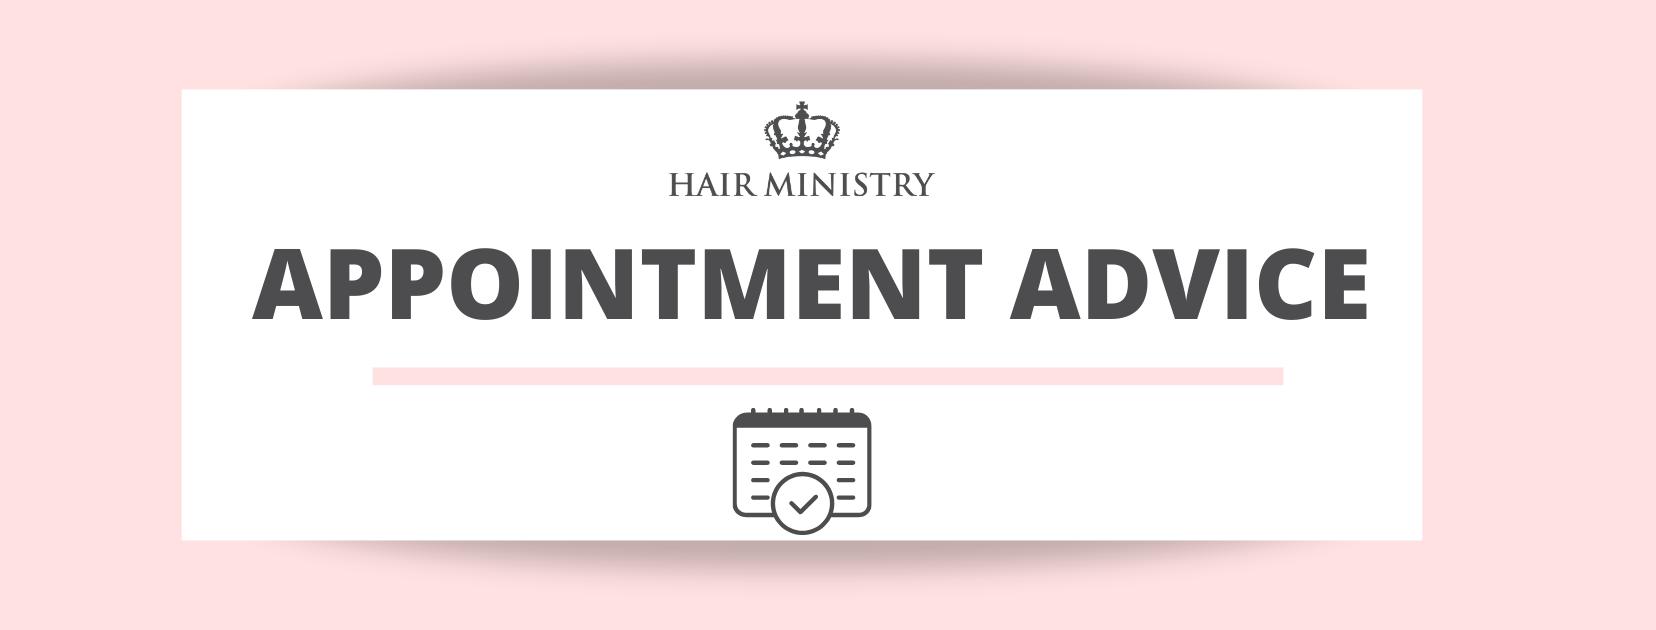 appointment advice banner v2